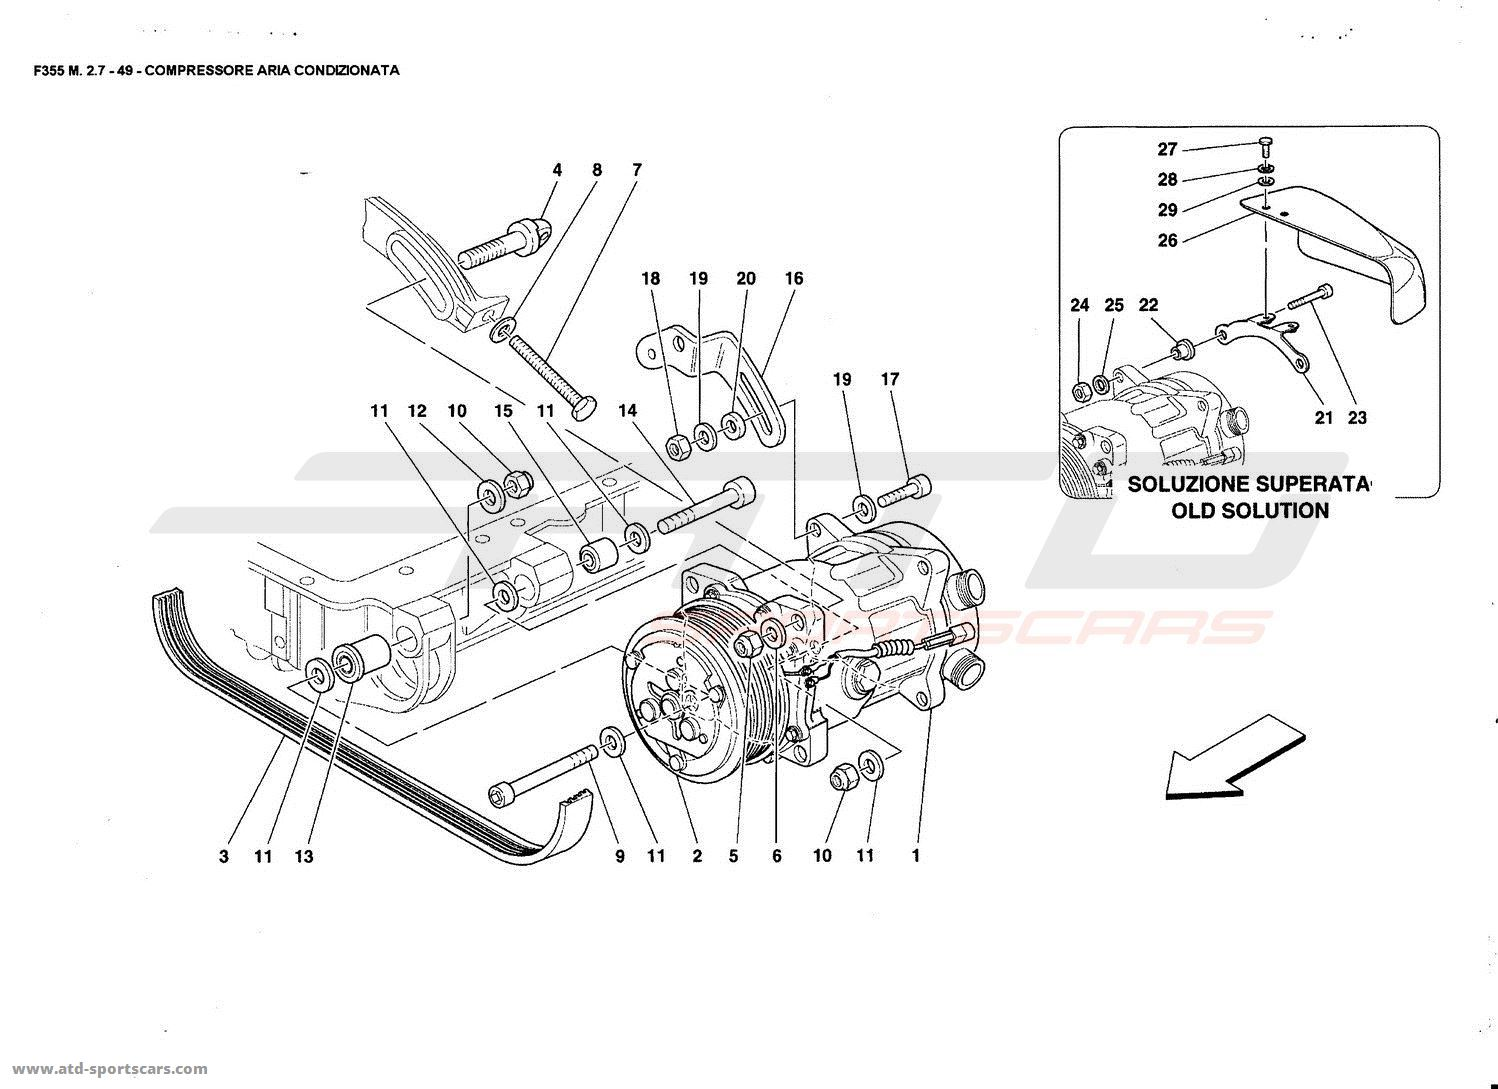 ferrari 355 wiring diagram ac hard start wiring 02 rancher es, Wiring diagram